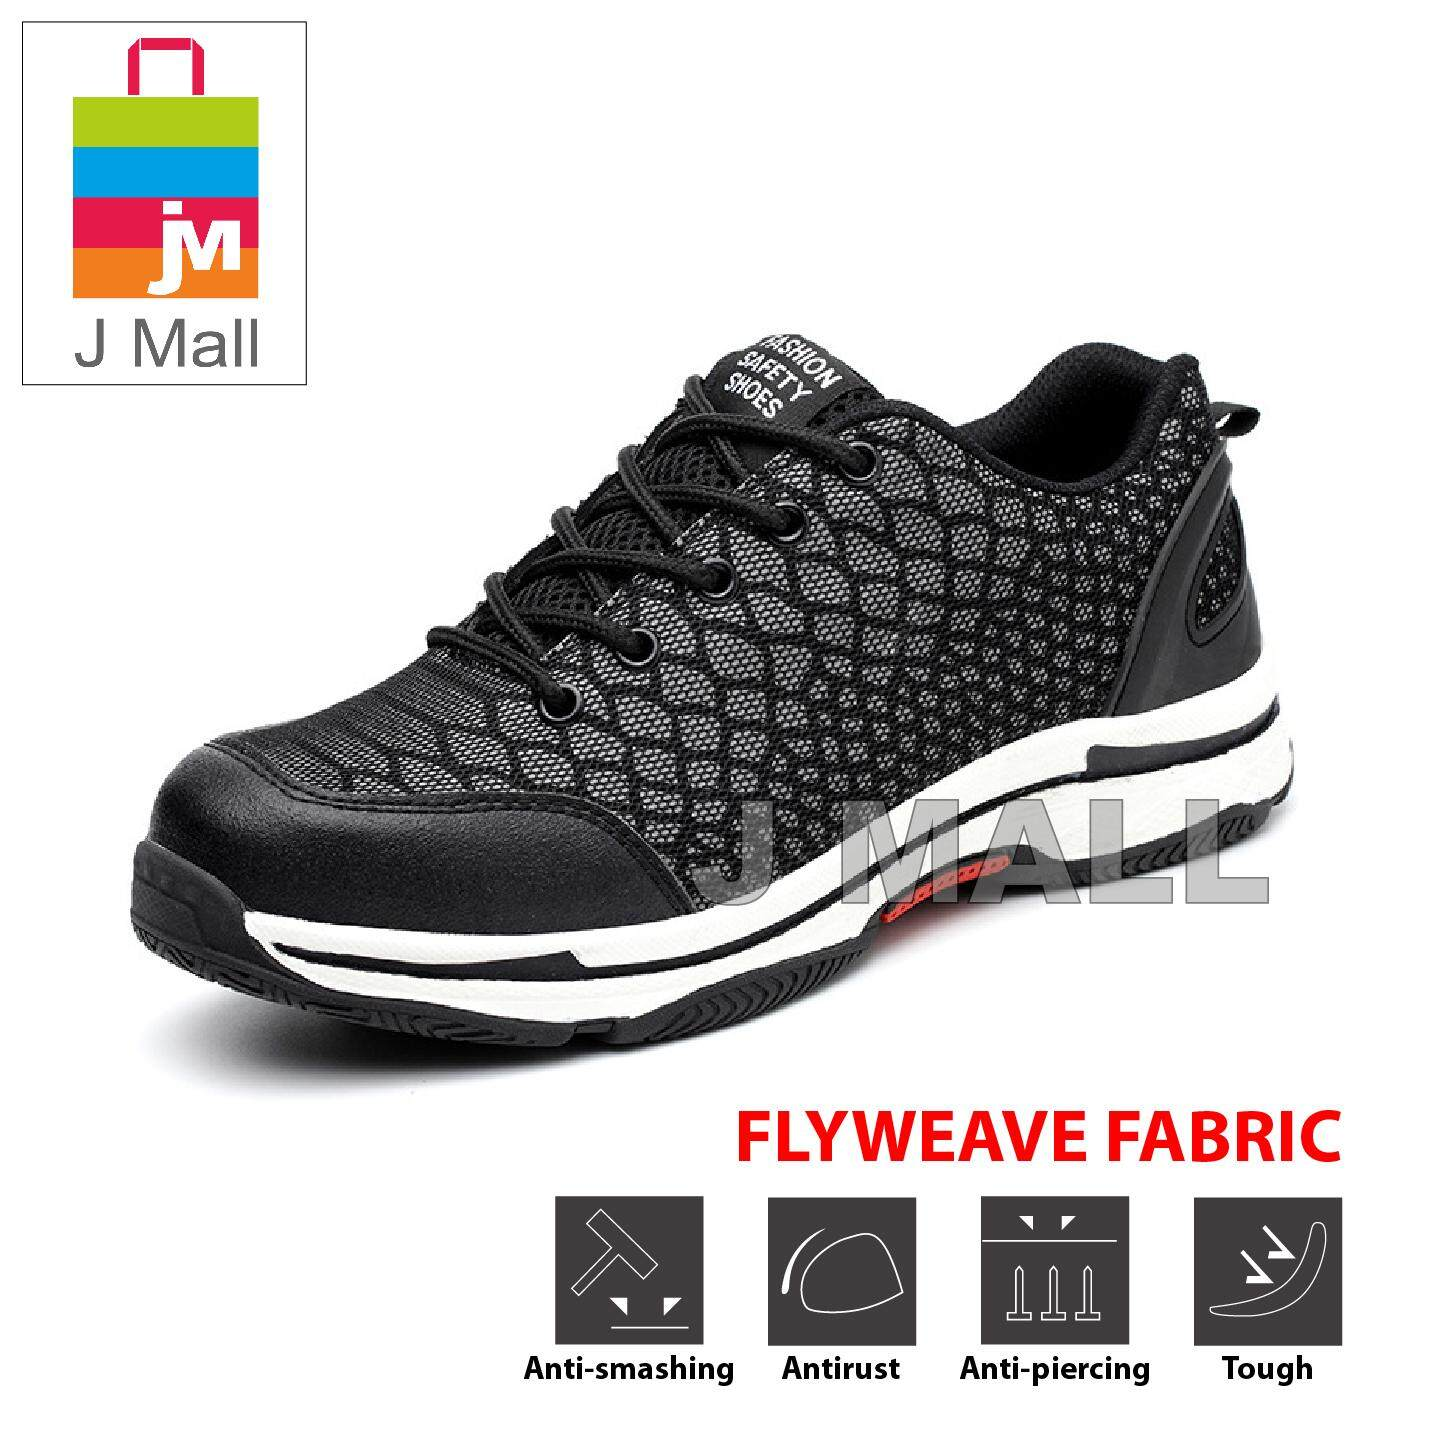 d61eb243265 J Mall Fashion Night Reflective Low-Cut Steel Toe Cap Work Safety Shoes  (Flyweave Fabric) 538 - Black